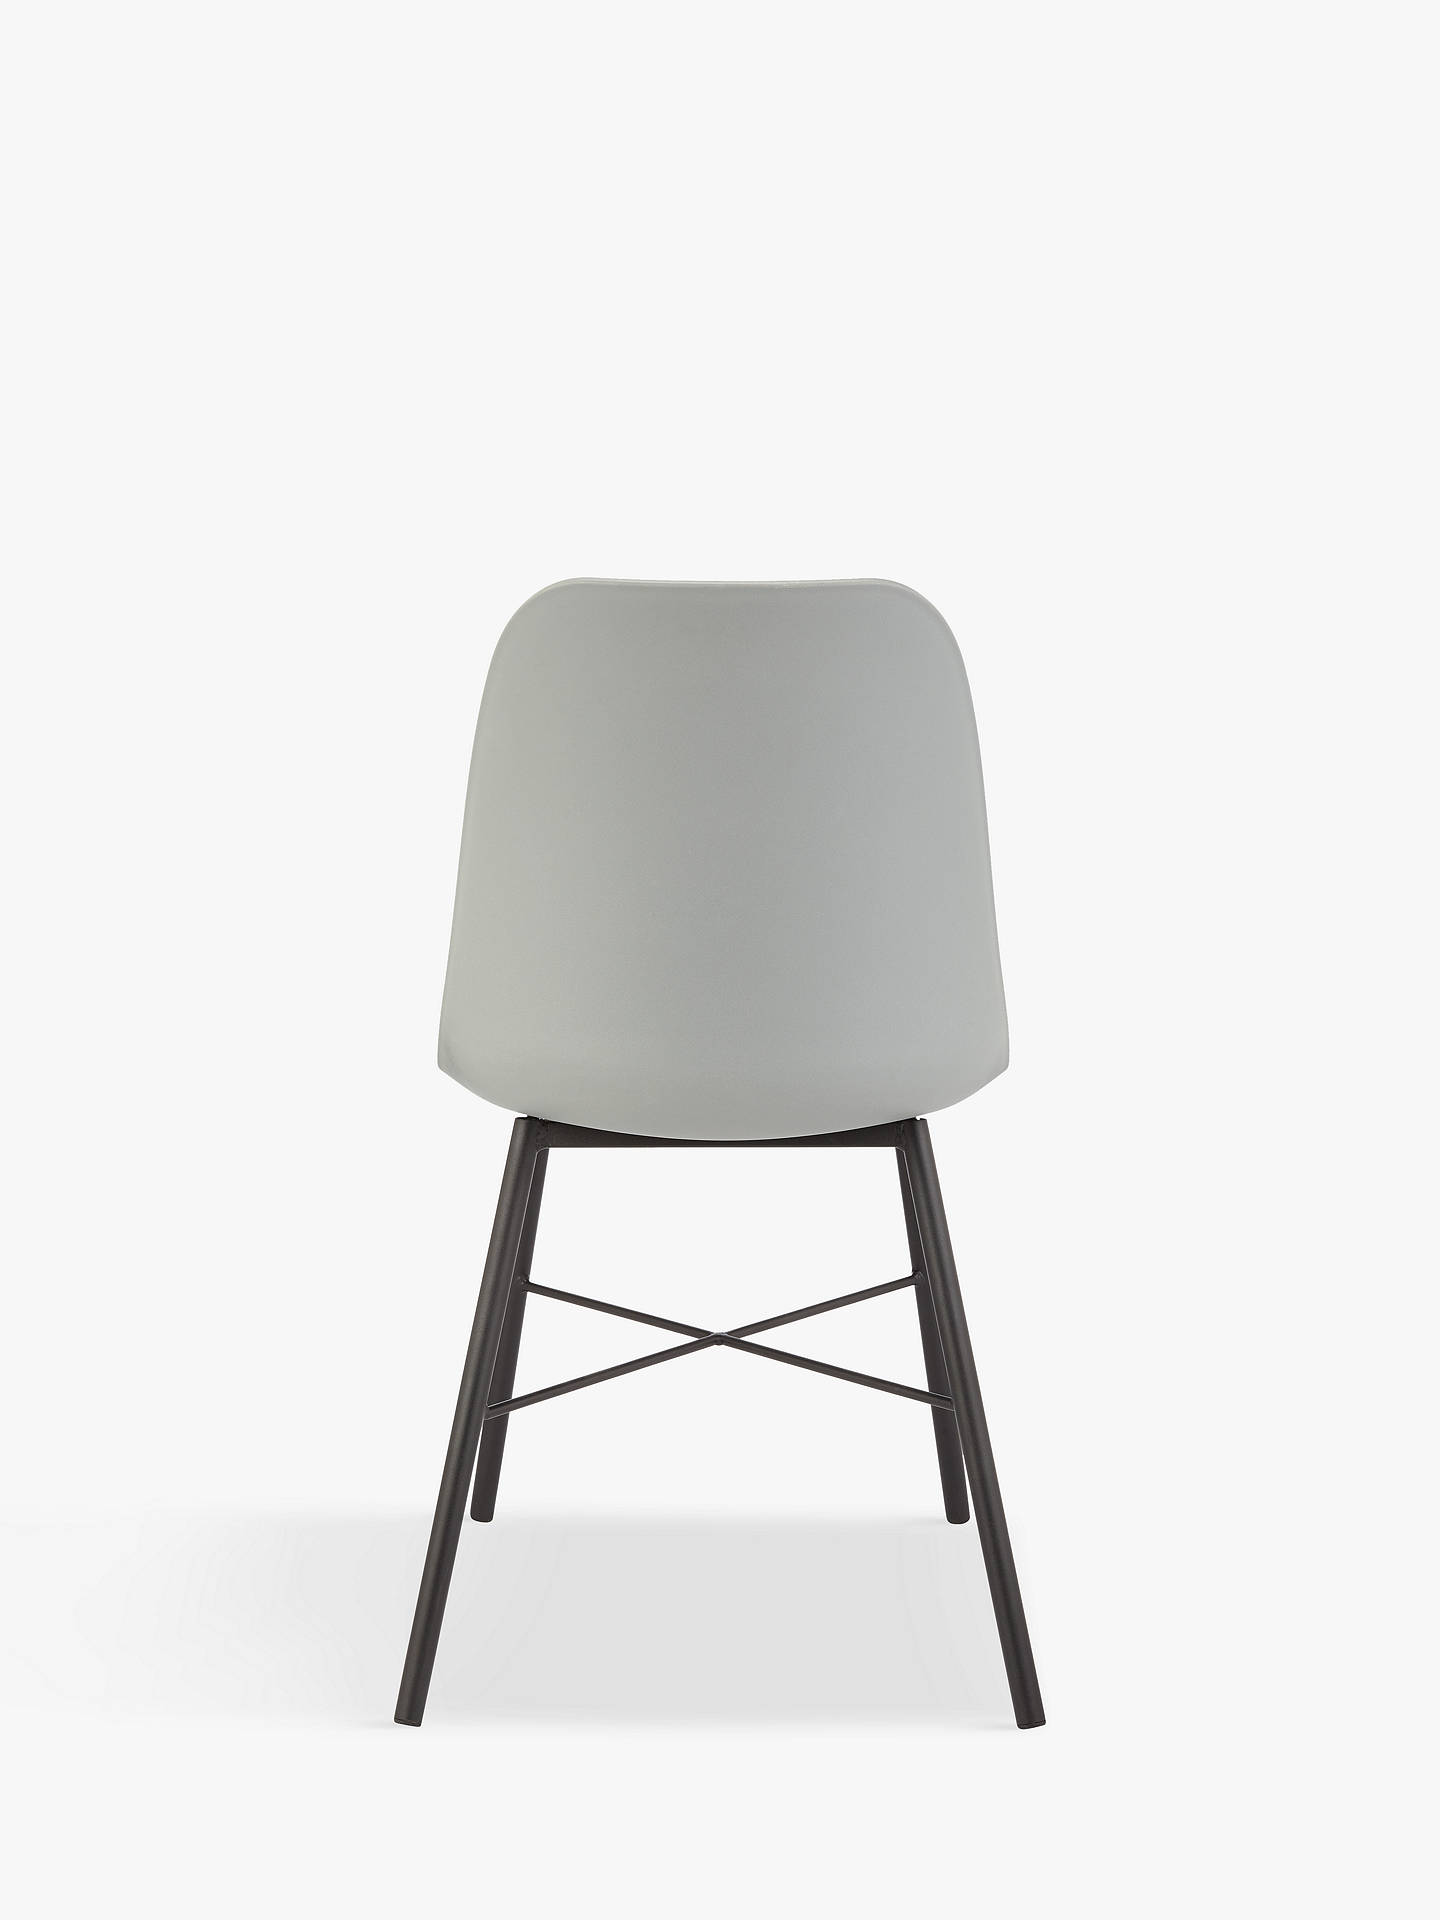 BuyHouse by John Lewis Whistler Dining Chair, Dusty Grey Online at johnlewis.com